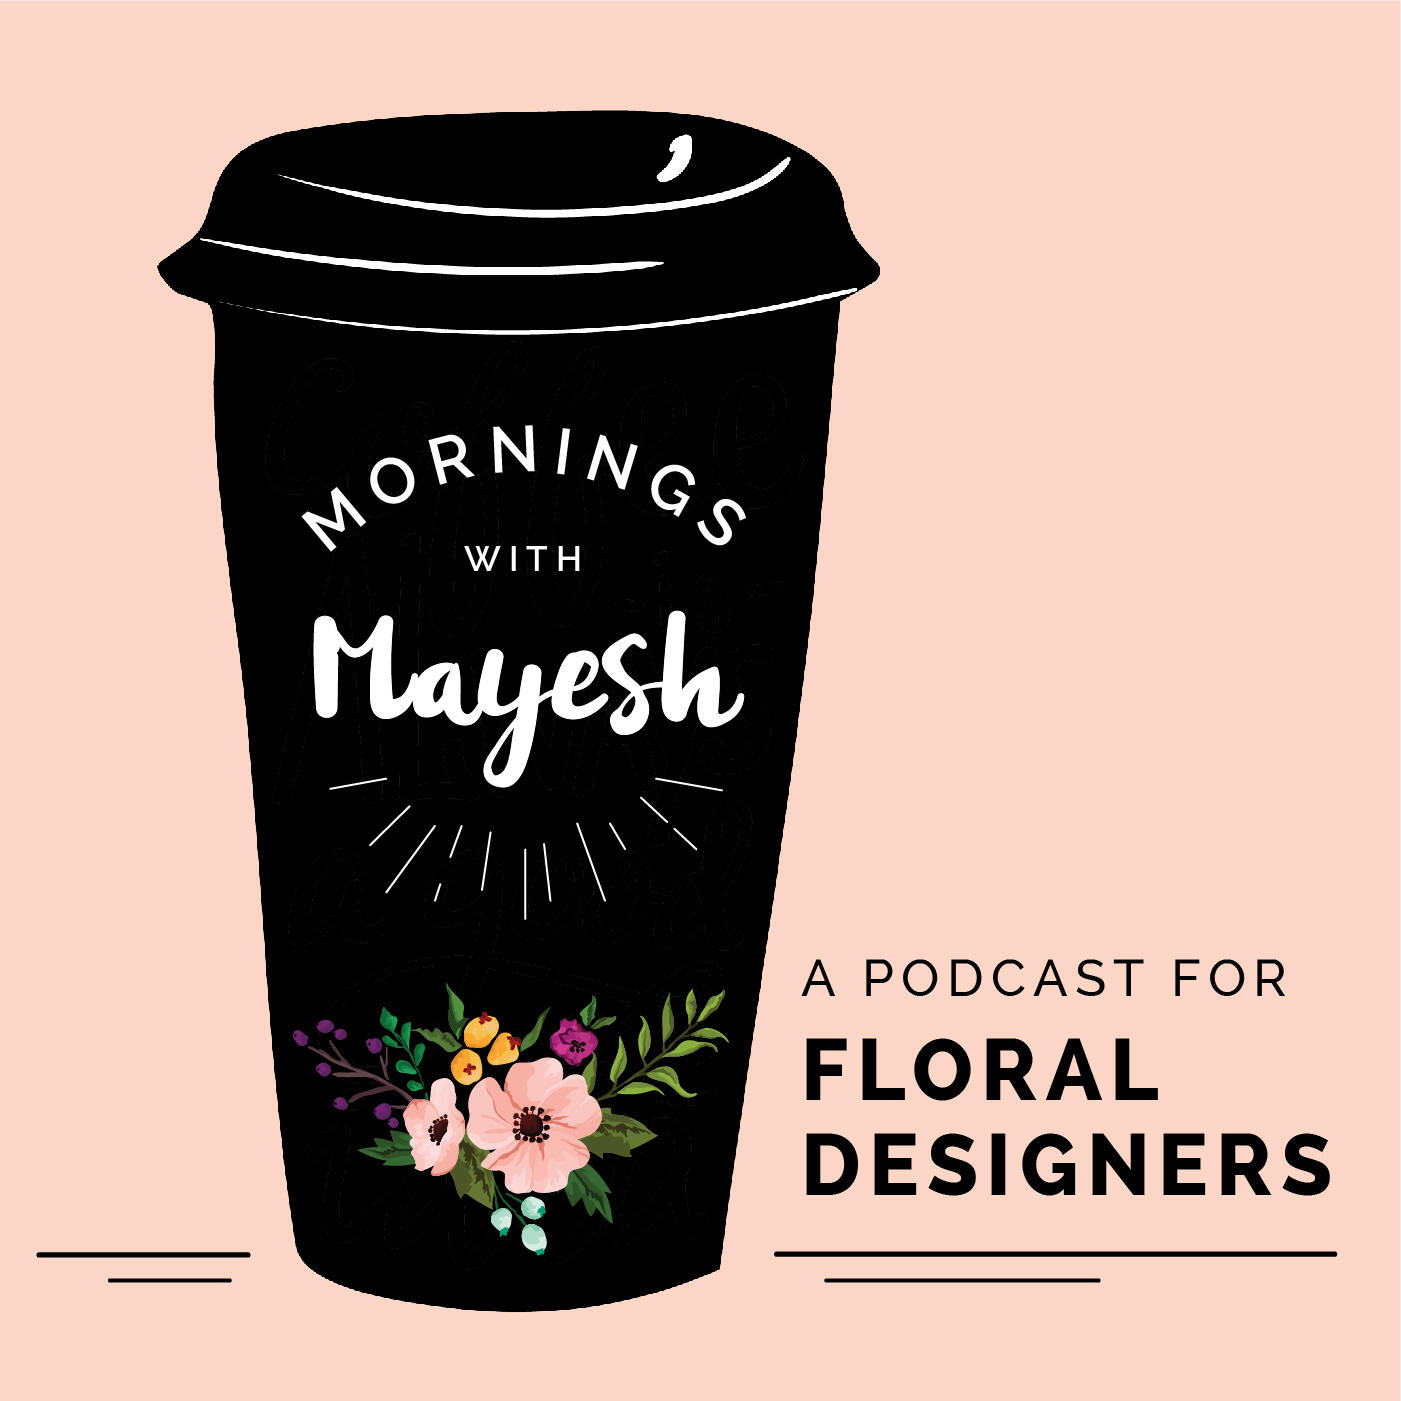 Listen To The Mornings With Mayesh Episode Mornings With Mayesh Susan Mcleary On Iheartradio Iheartradio